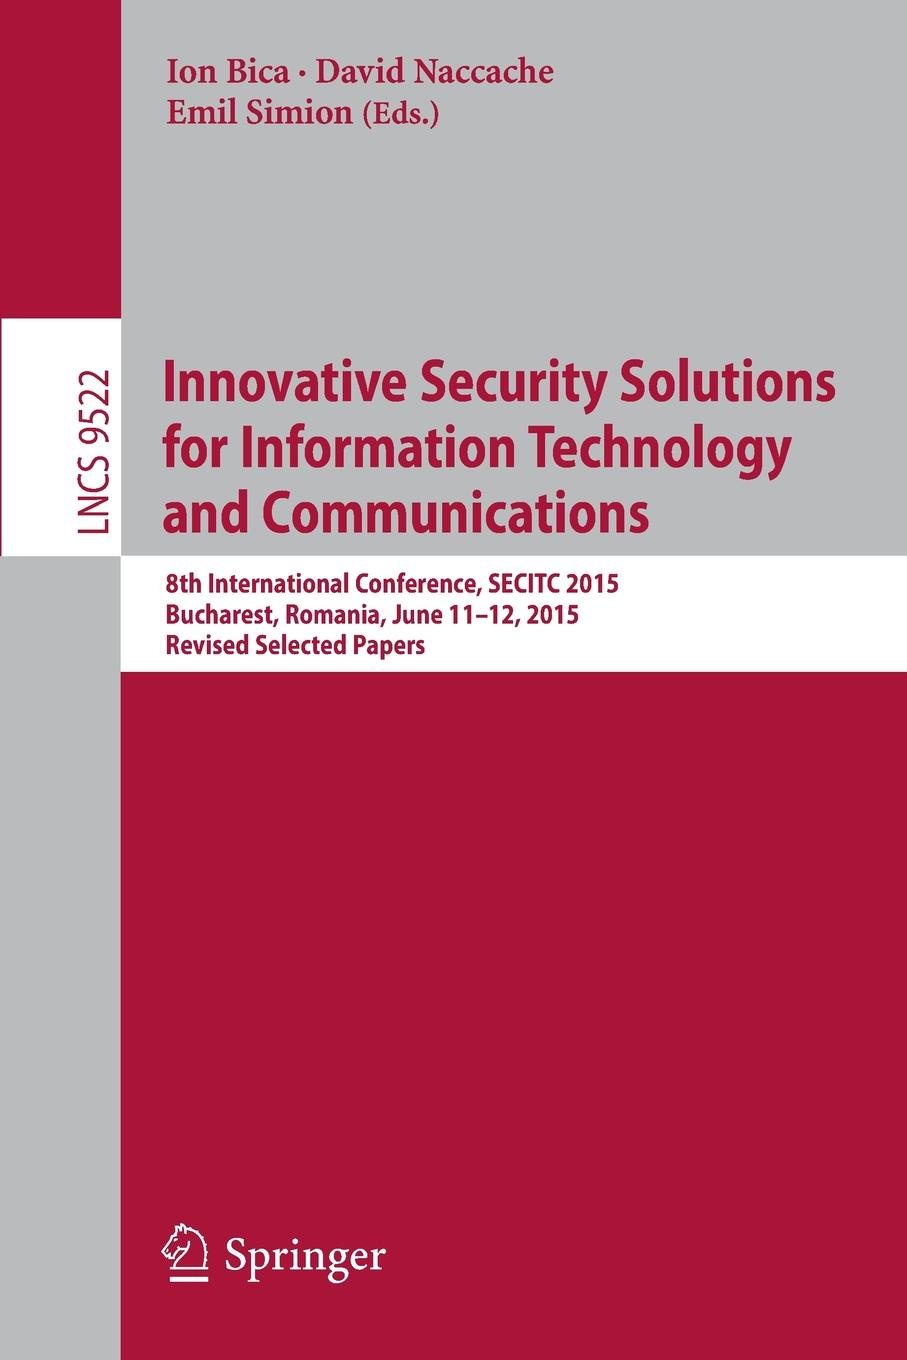 Innovative Security Solutions for Information Technology and Communications. 8th International Conference, SECITC 2015, Bucharest, Romania, June 11-12, 2015. Revised Selected Papers